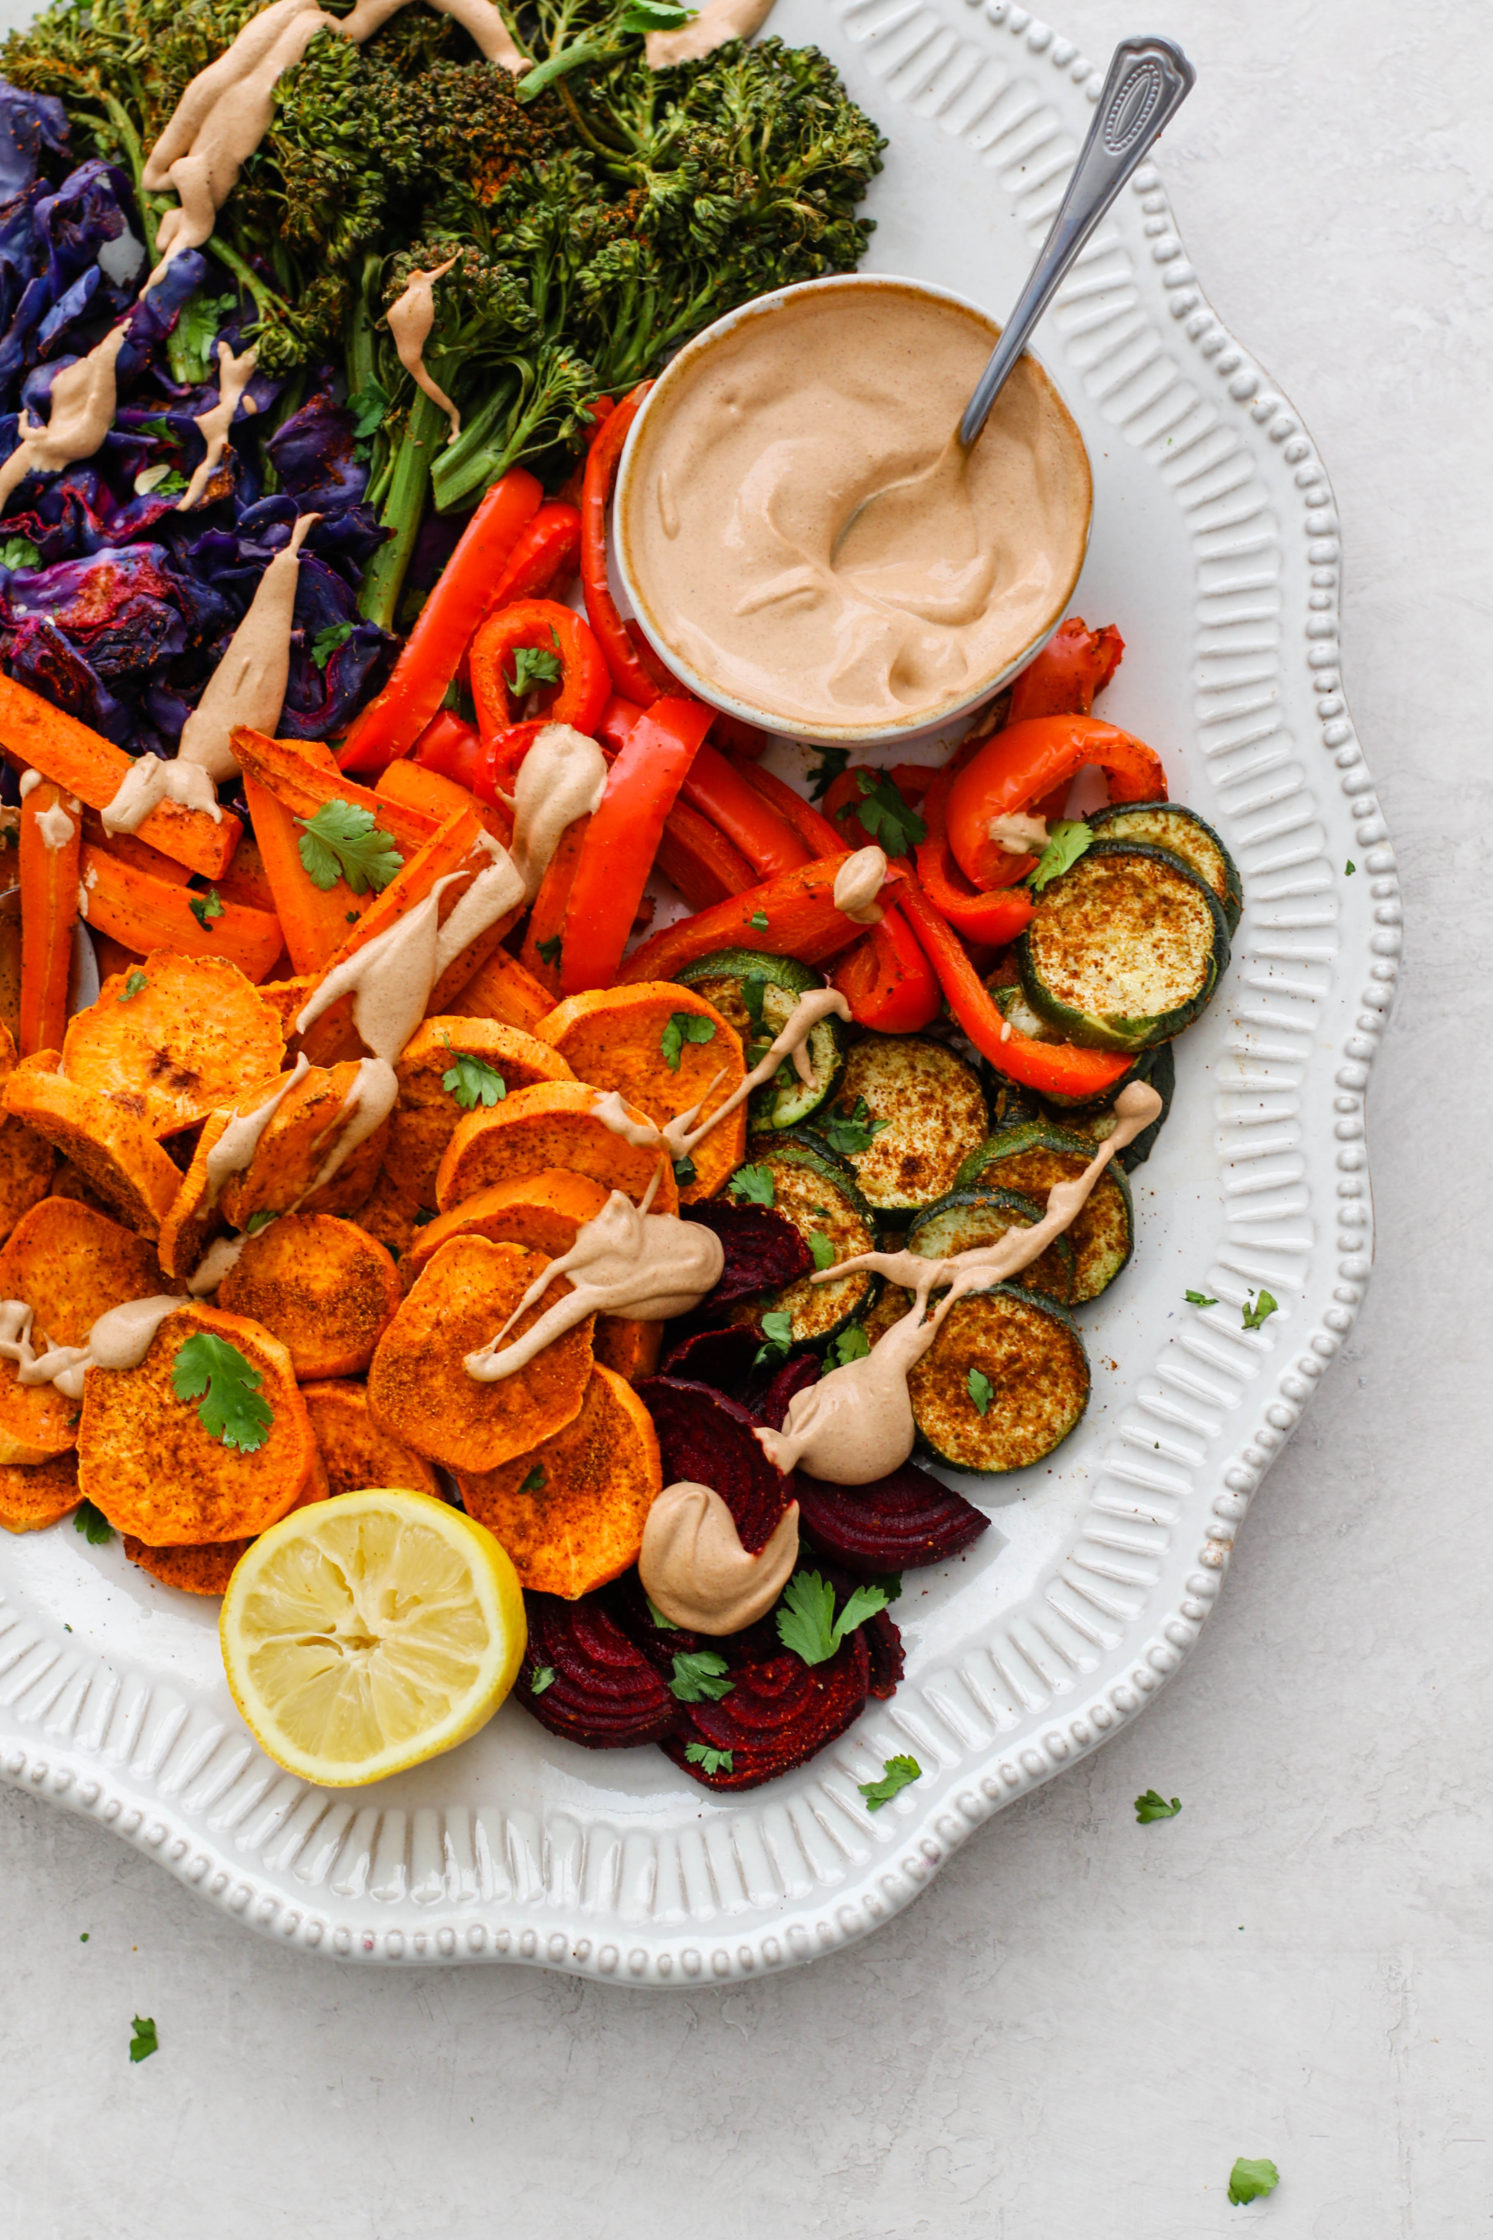 Oil-Free Roasted Veggies with Almond Butter Sauce